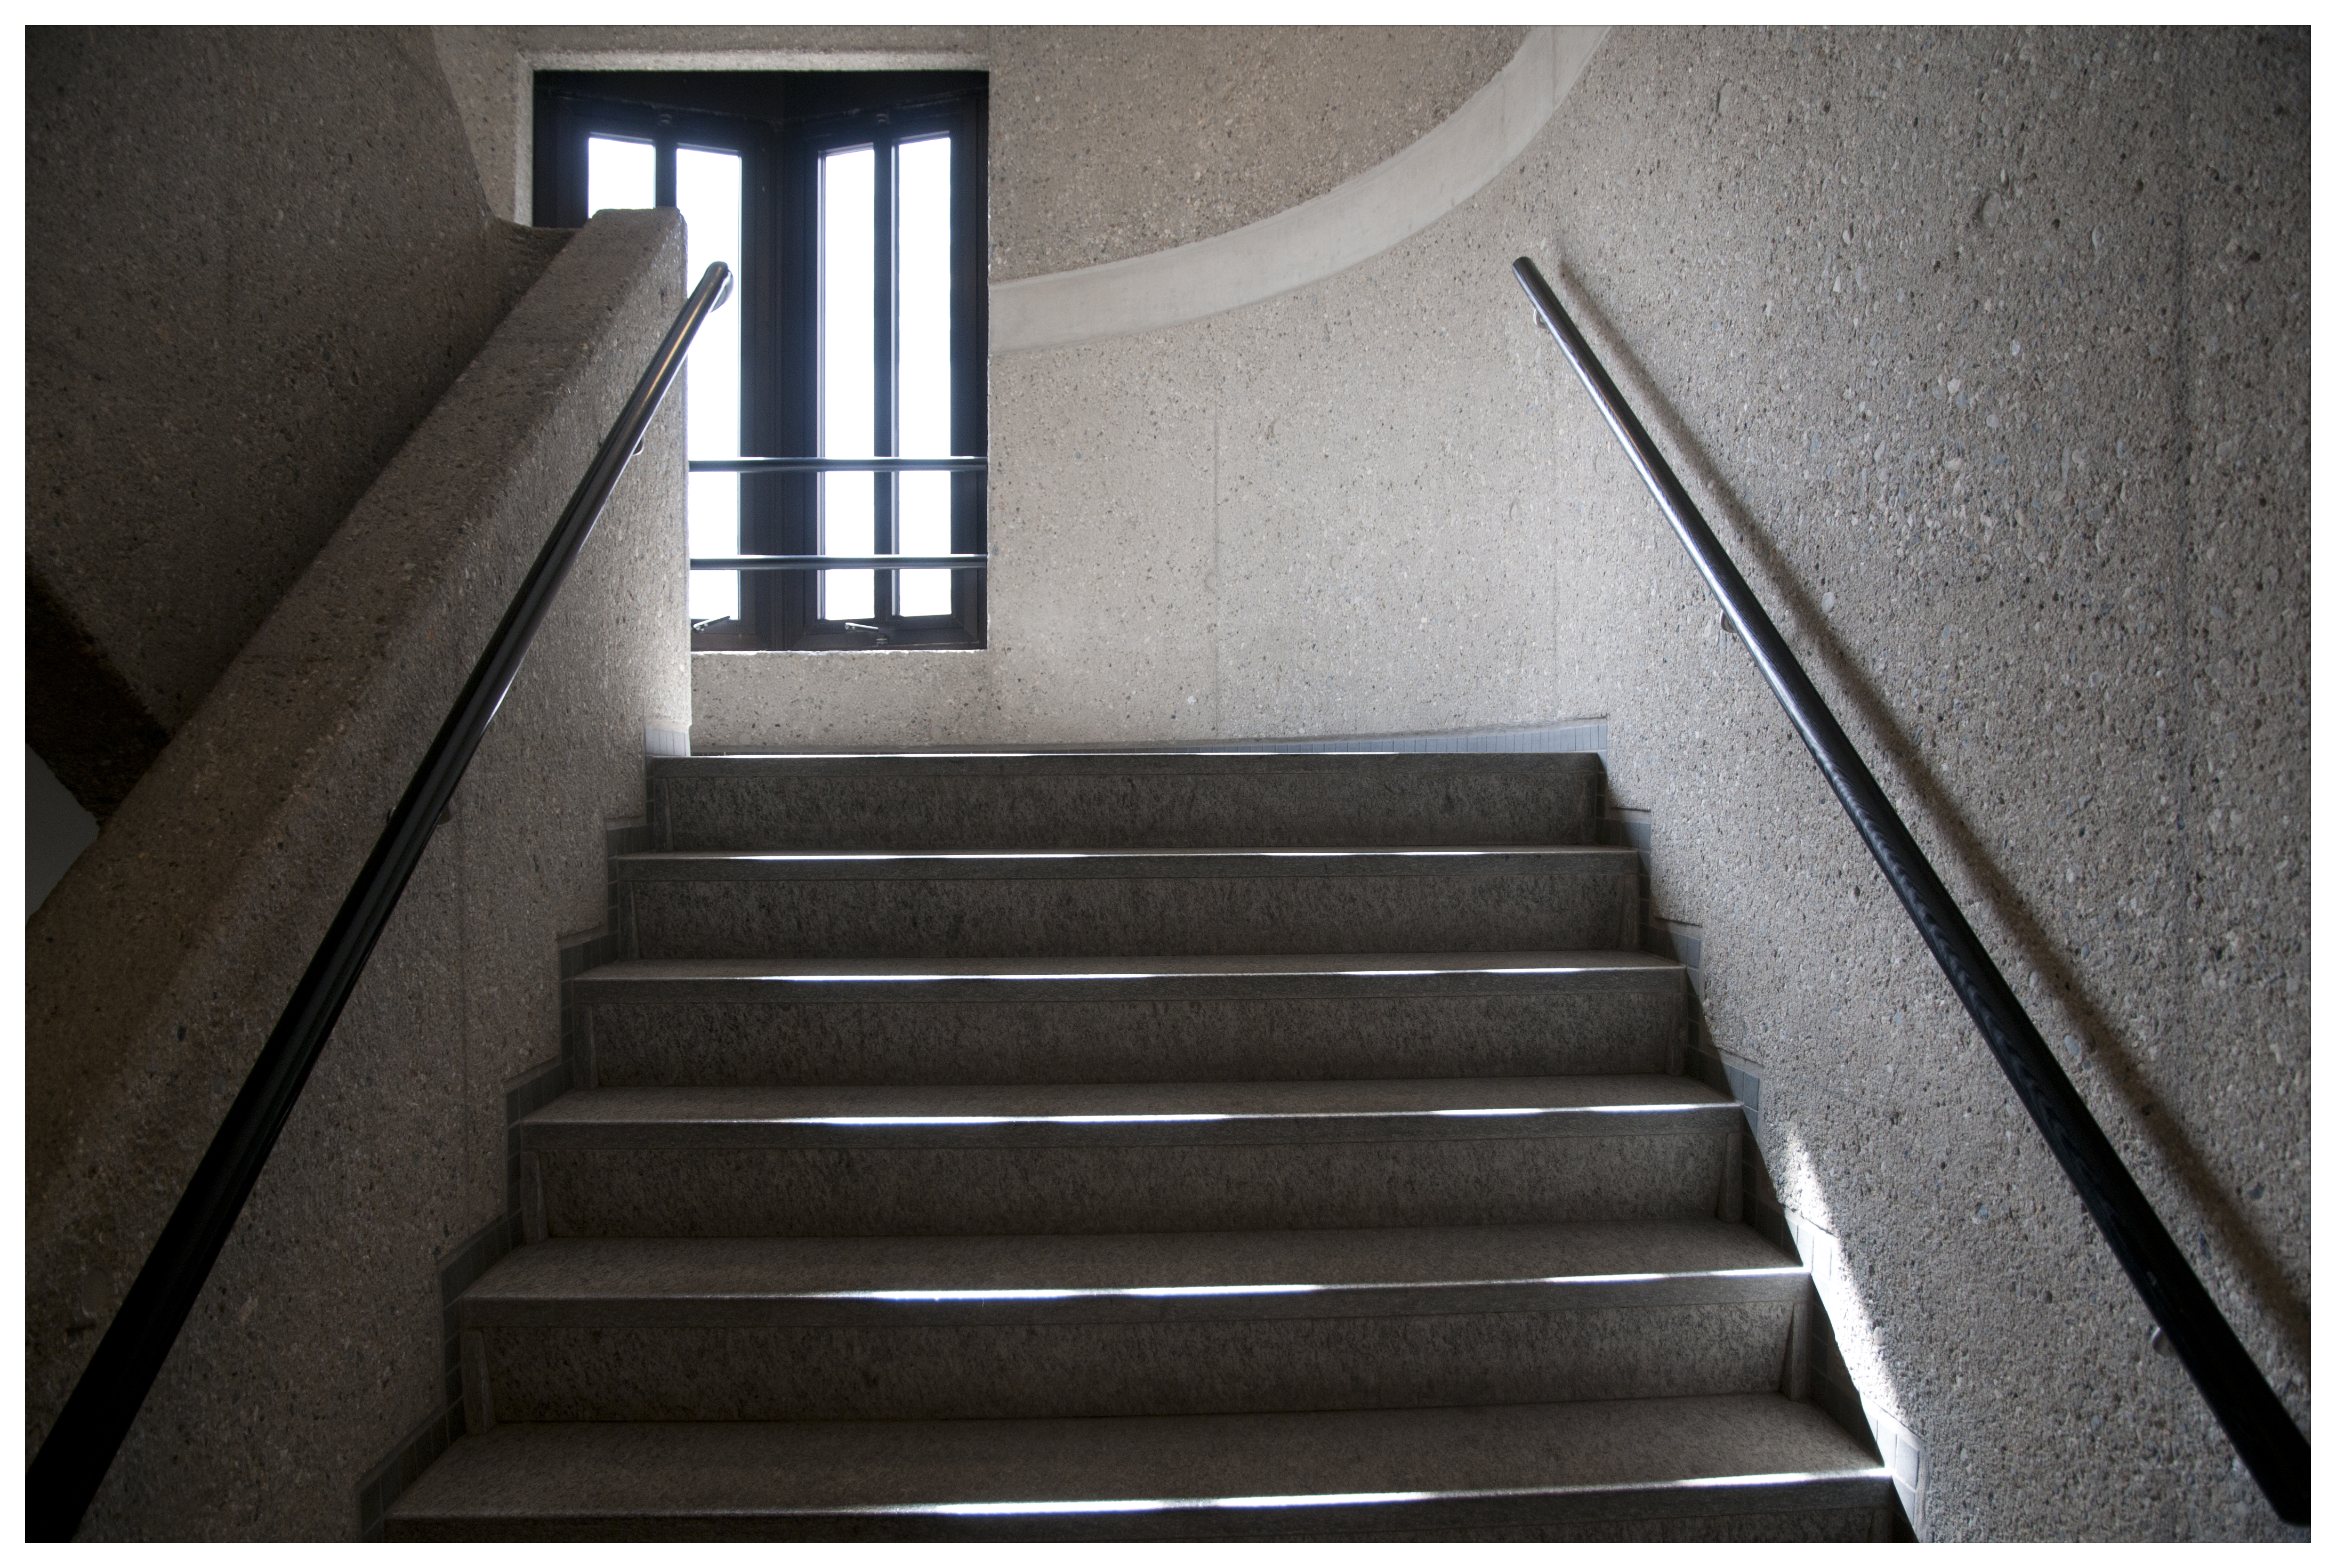 130325 Trappenhuis 1717 %2812905883874%29 If youve fallen down stairs and injured yourself, who is liable? Contact a New York personal injury attorney for help.